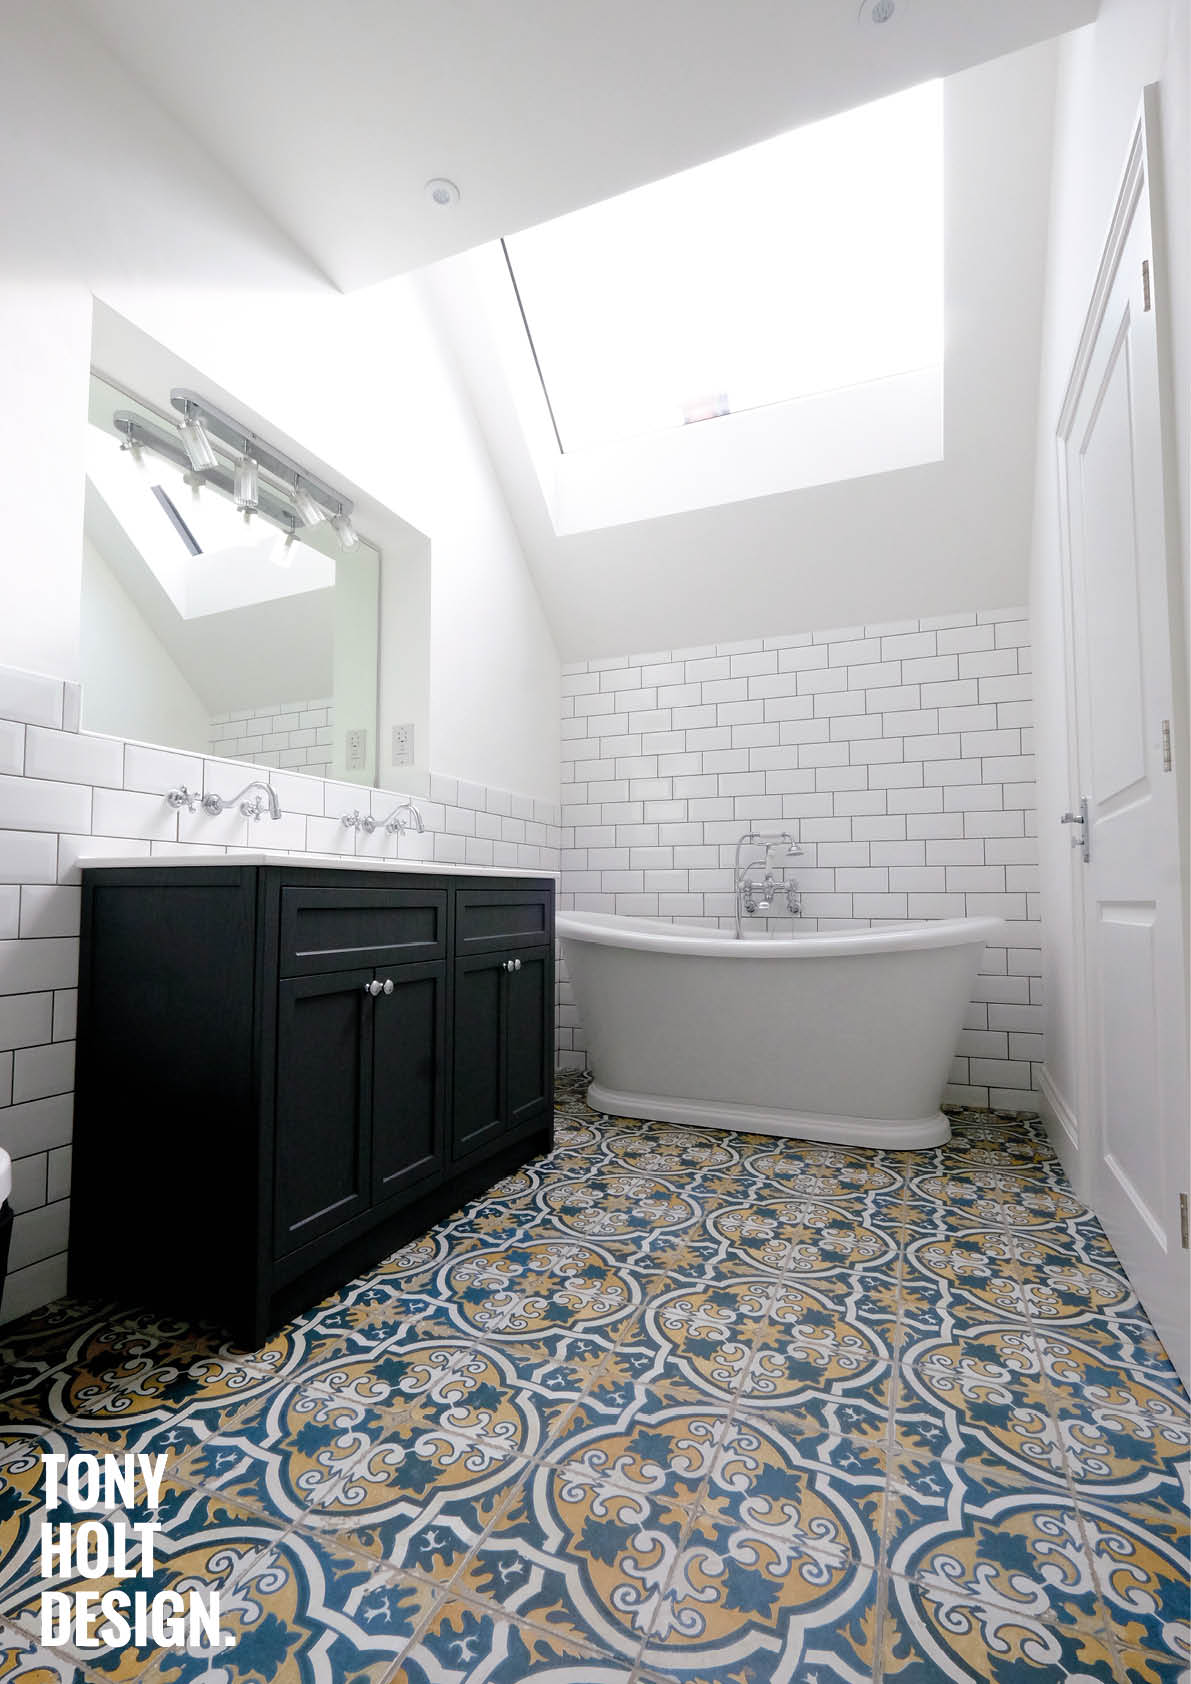 Tony Holt Design_South Drive_Remodel_Bathroom 2_Web2.jpg